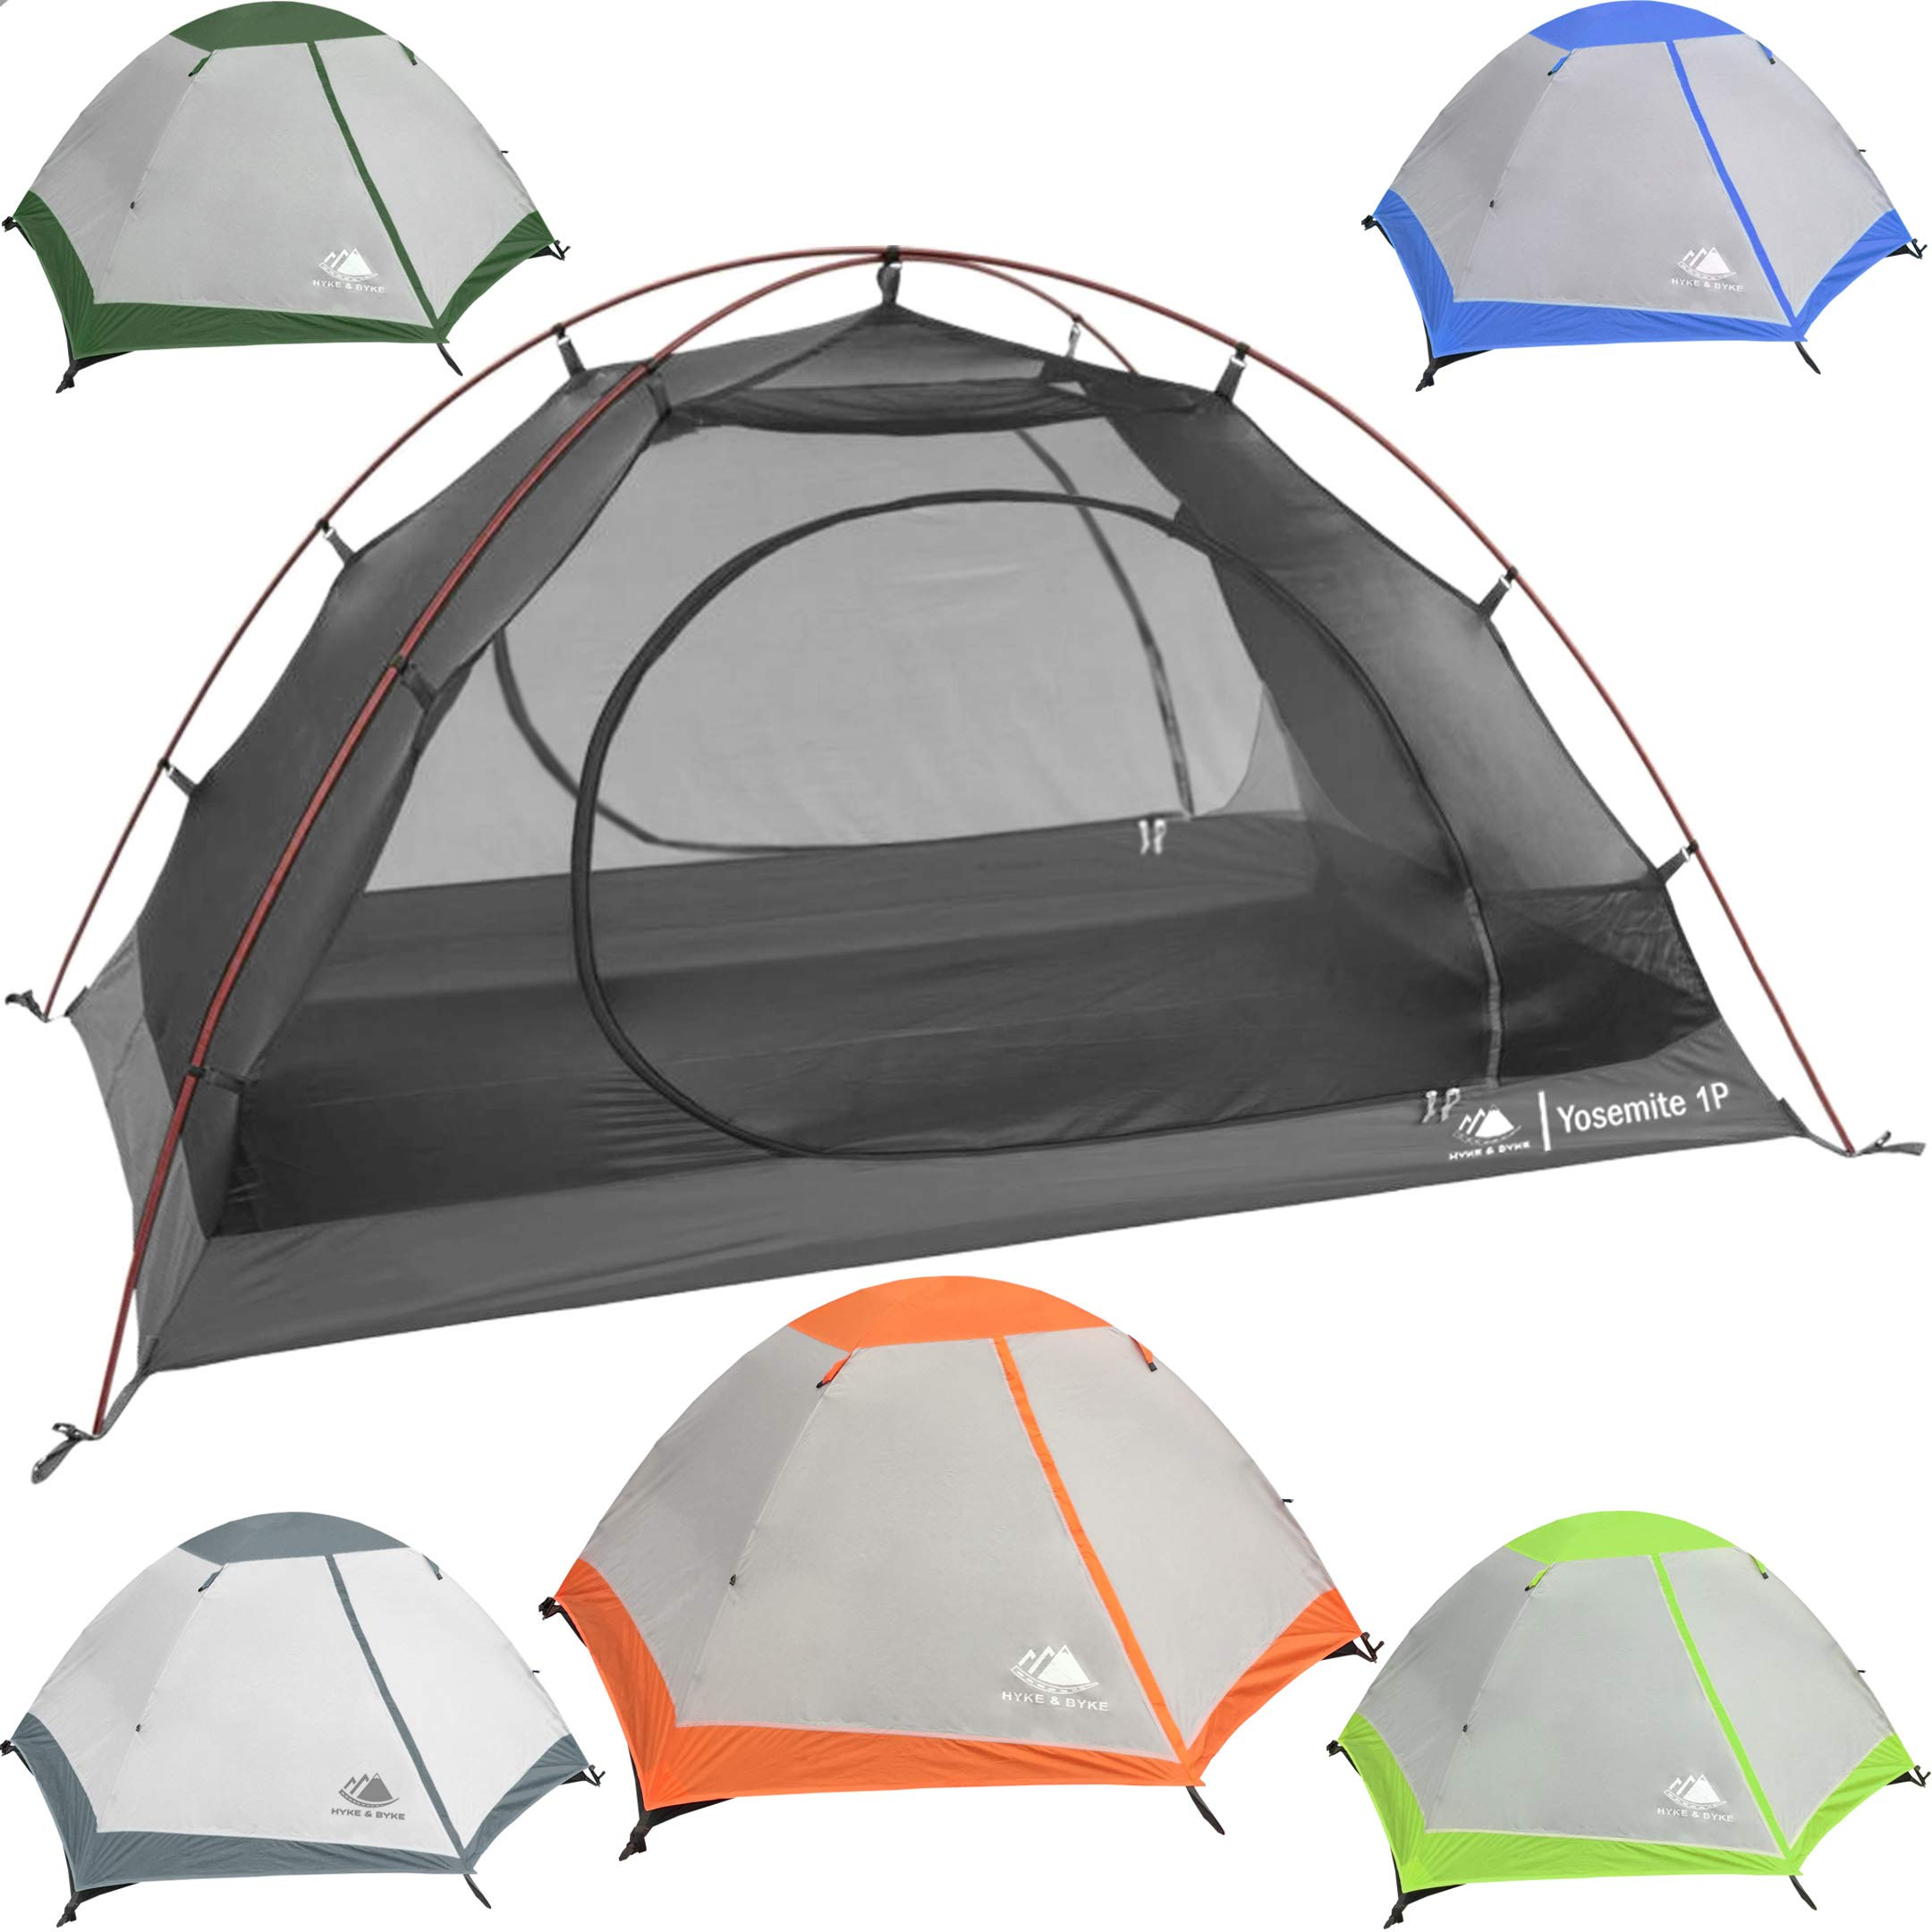 Hyke & Byke Yosemite 1 Person Backpacking Tent with Footprint - Lightweight Two Door Ultralight Dome Camping Tent (1P - Orange)